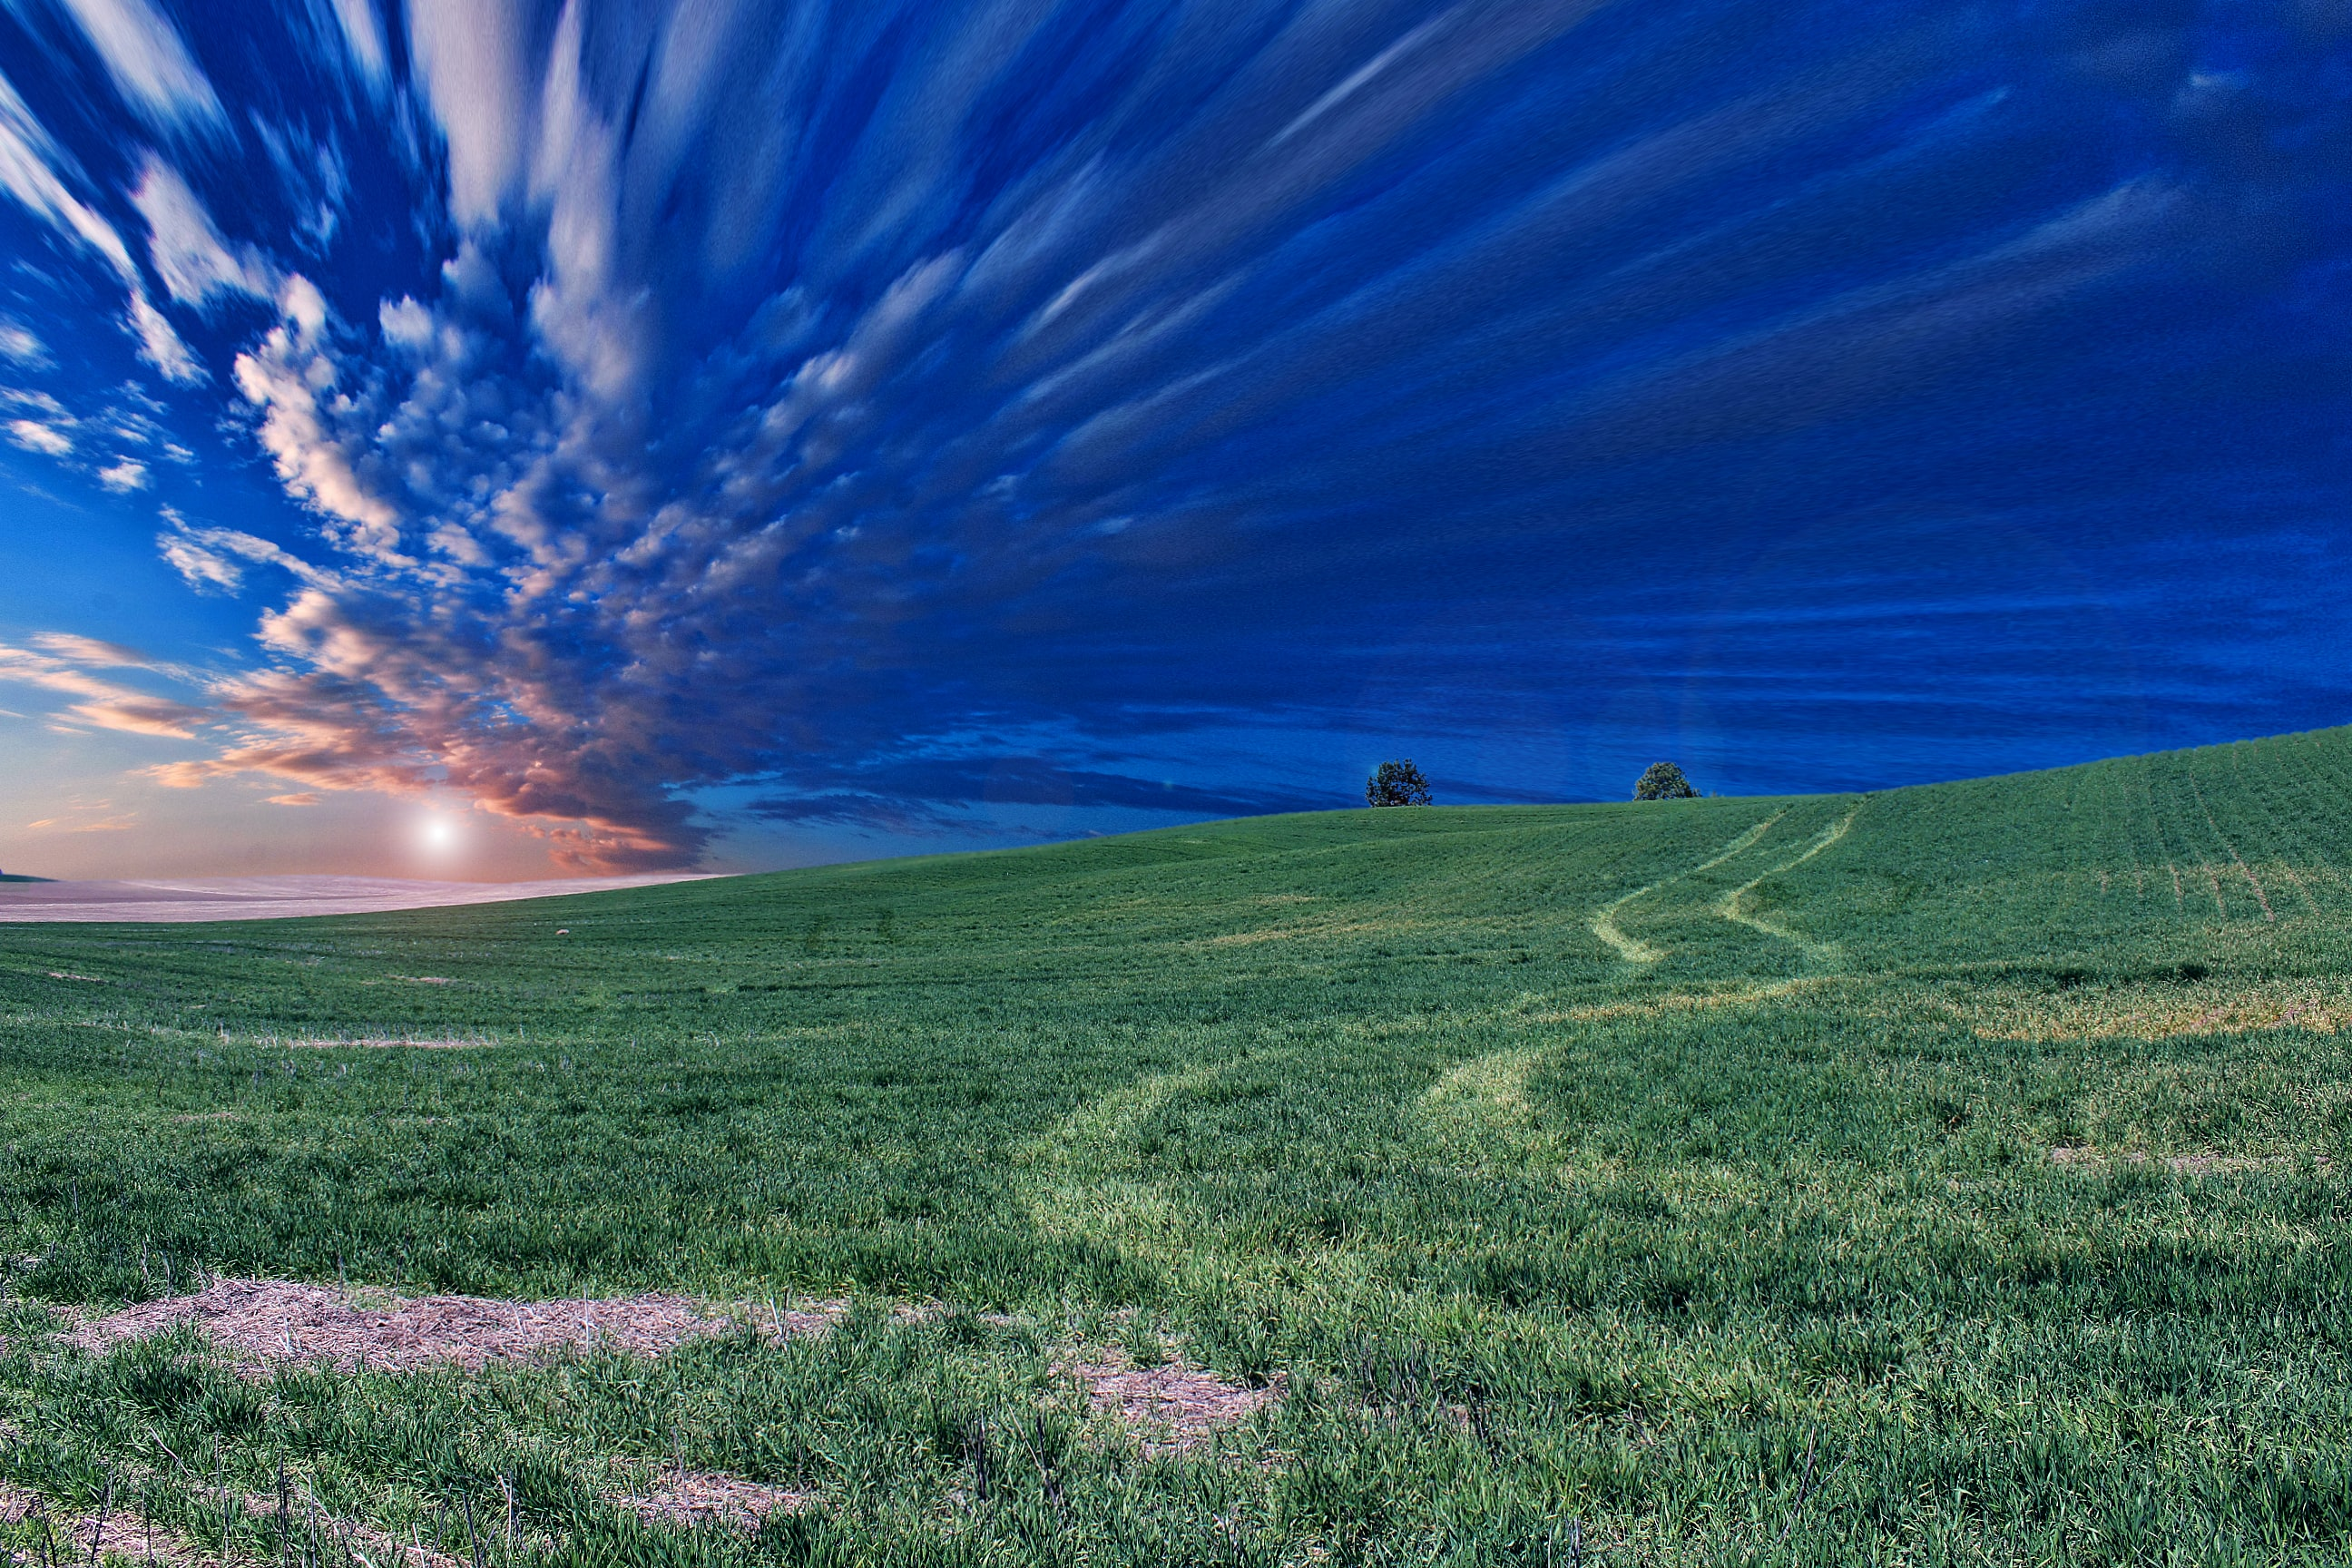 A grassy meadow in a rural area with the sky filled with fluffy clouds during sunset